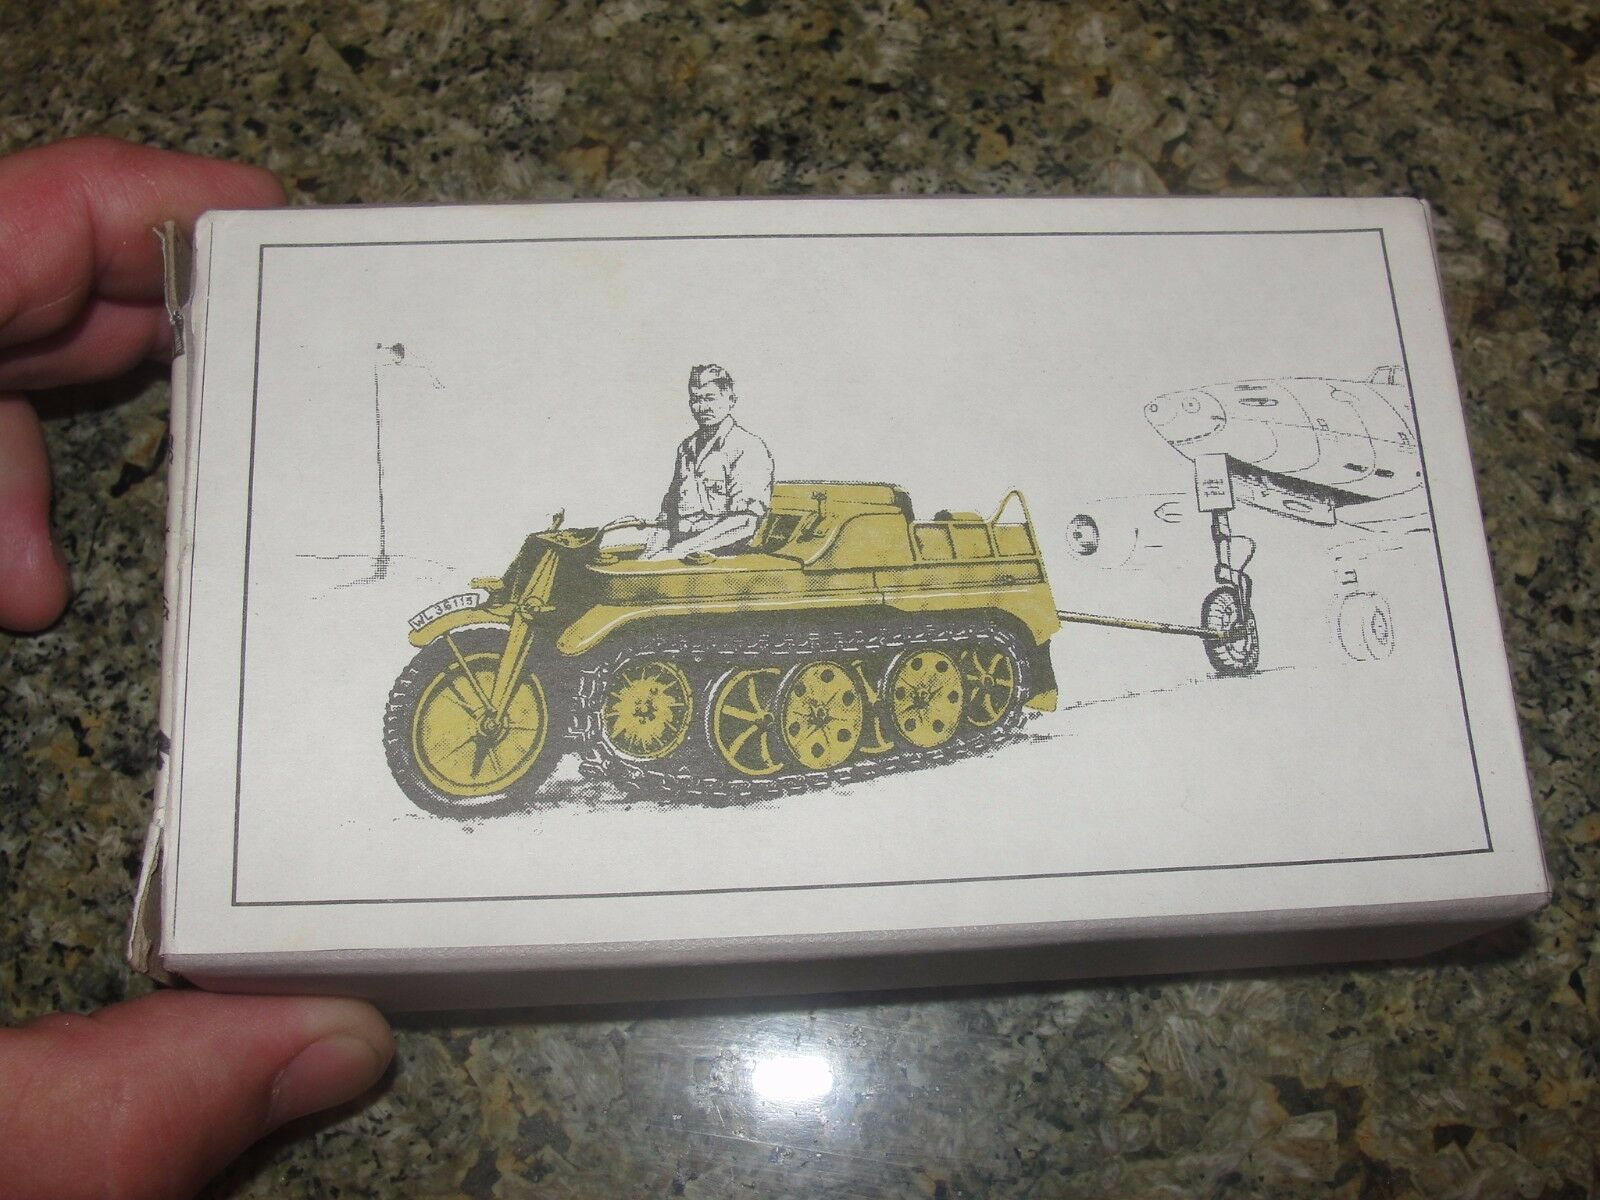 RARE vintage KETTENKRAD me262 towbar set KNIGHTS CROSS prod WWII 1 48 scale mode